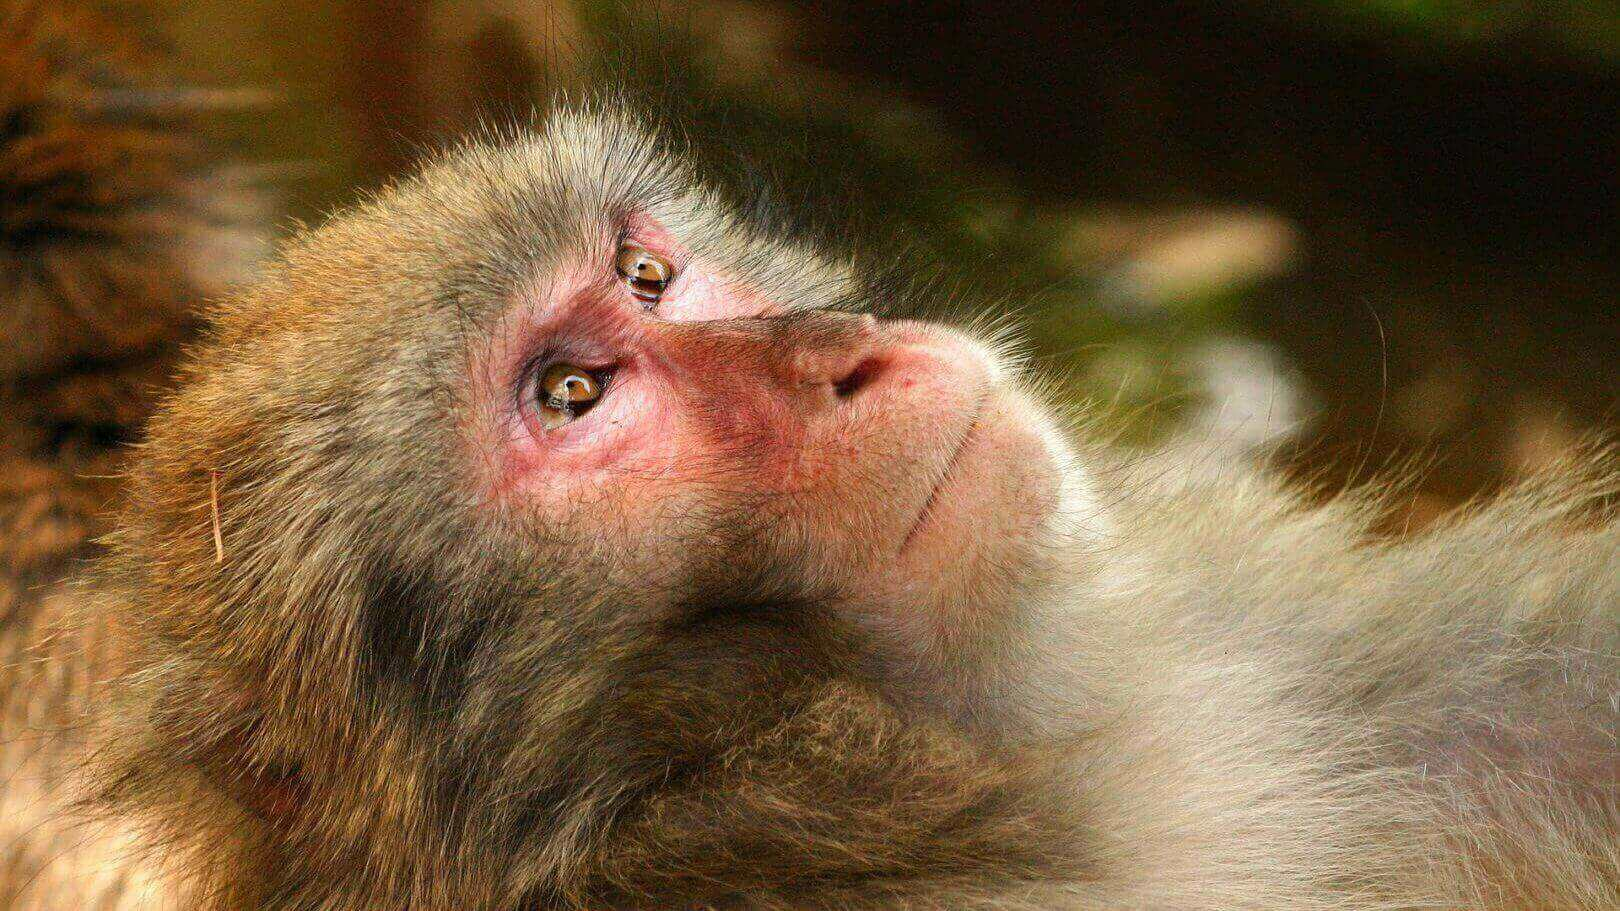 Chinese Scientists Implant 3D Printed Blood Vessels into Monkeys | All3DP